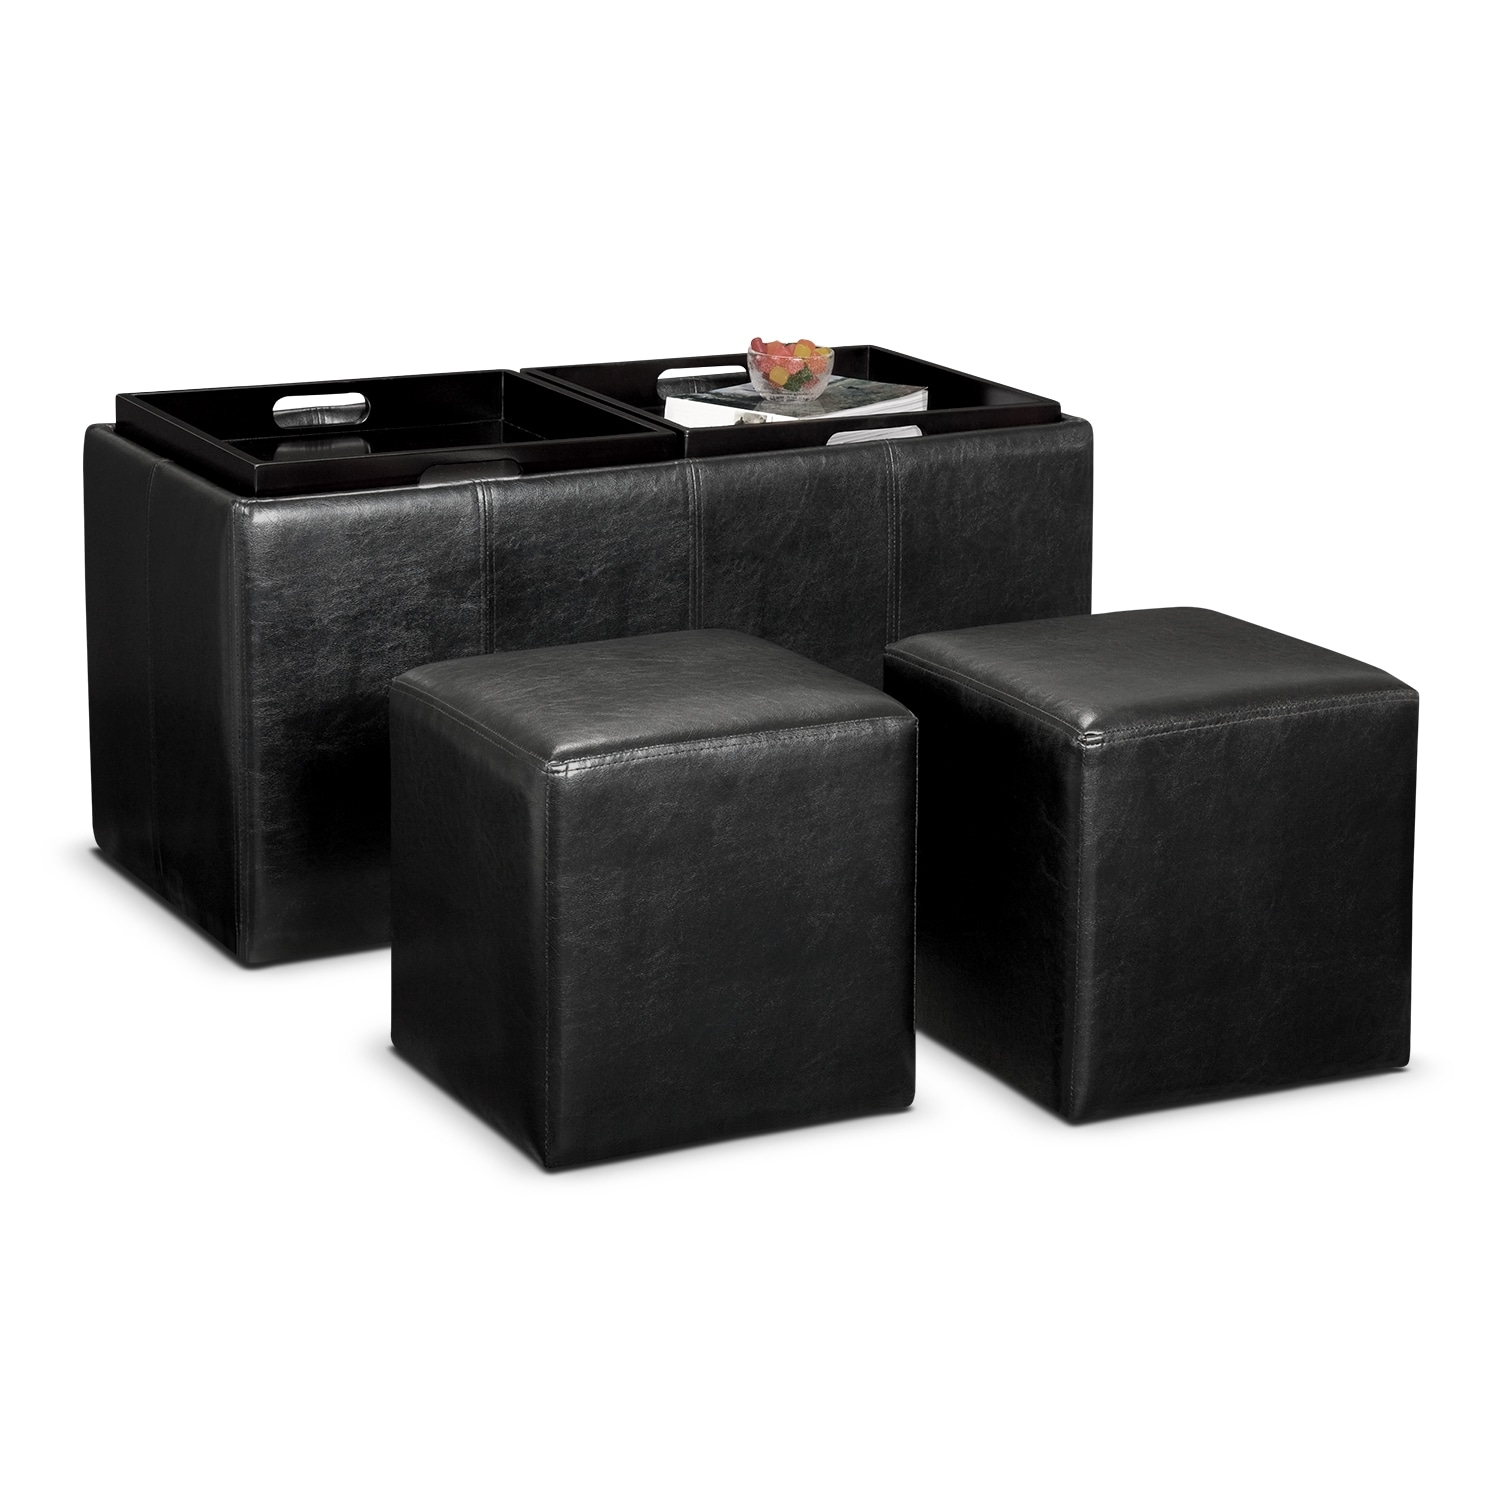 Tiffany 3-Piece Storage Ottoman with Trays - Black - Ottomans Living Room Seating Value City Furniture